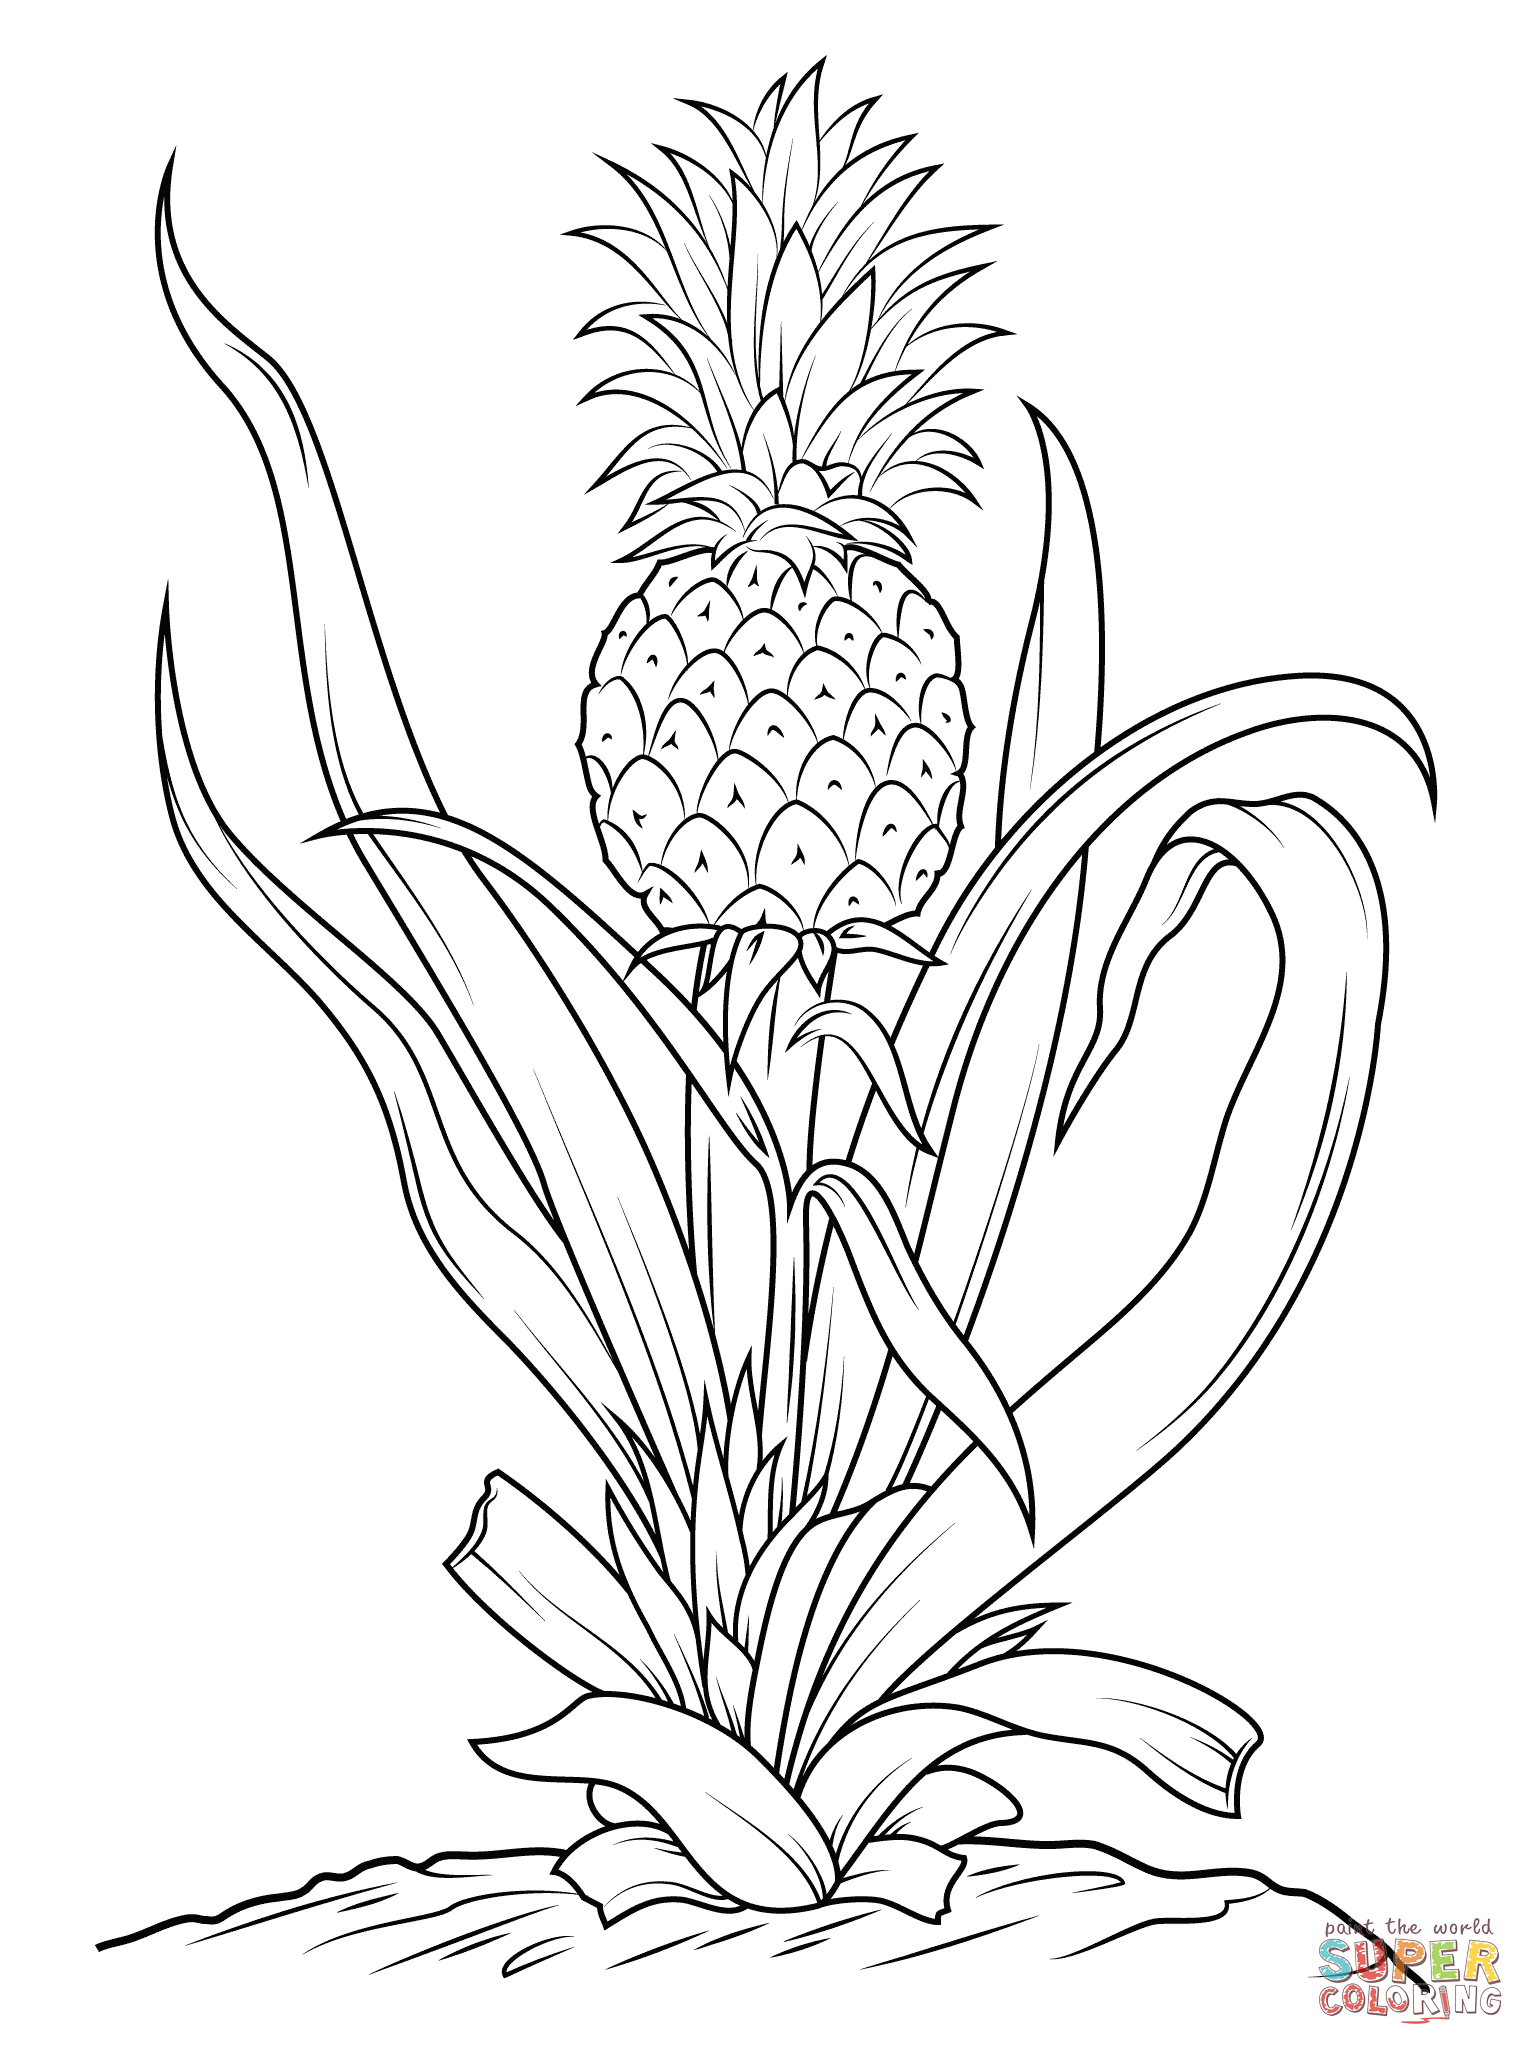 Pineapple Tree Coloring Page